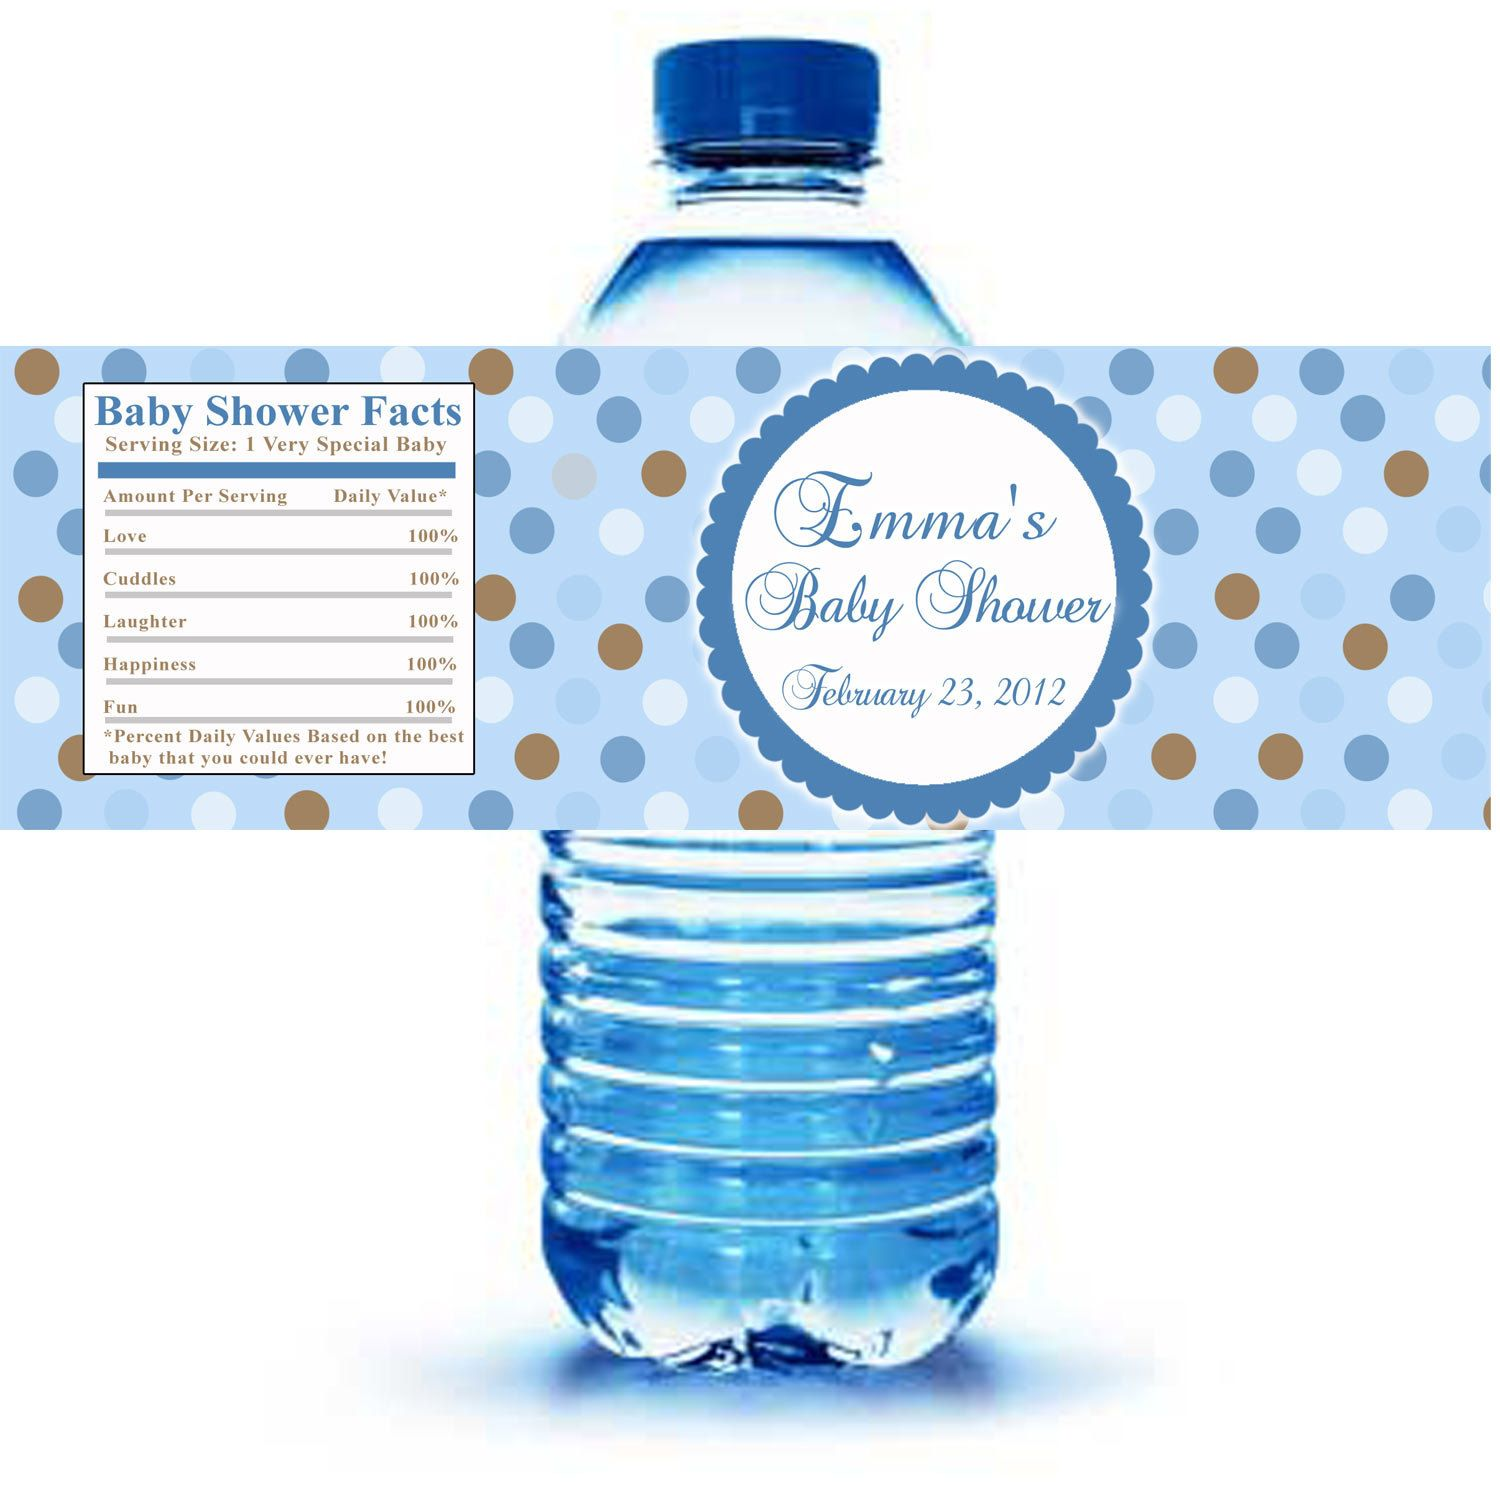 Printable Personalized With Name Blue Polka Dots Water Bottle Labels Wrappers Birthday Party Baby Shower Boy Custom Wraps In 2021 Water Bottle Labels Baby Shower Baby Shower Water Bottles Water Personalized water bottle label template